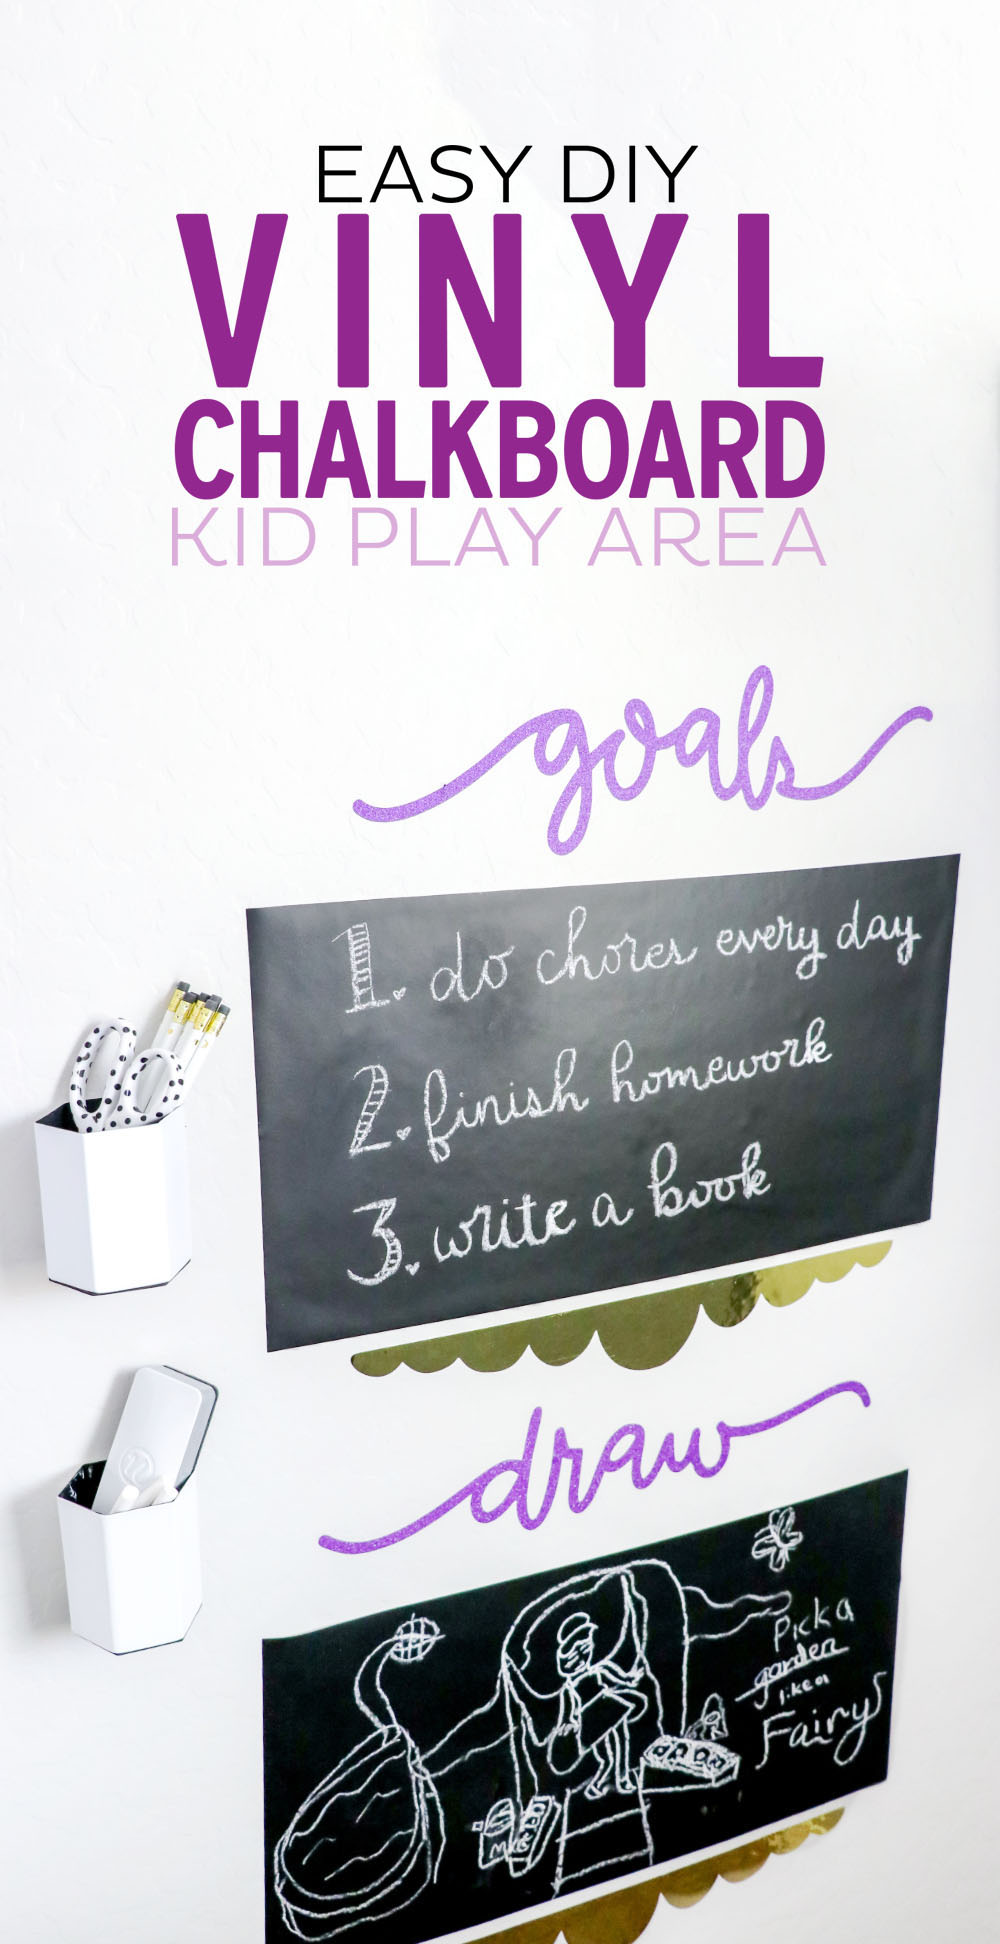 Kids Will Love This Diy Vinyl Chalkboard Kid Play Area